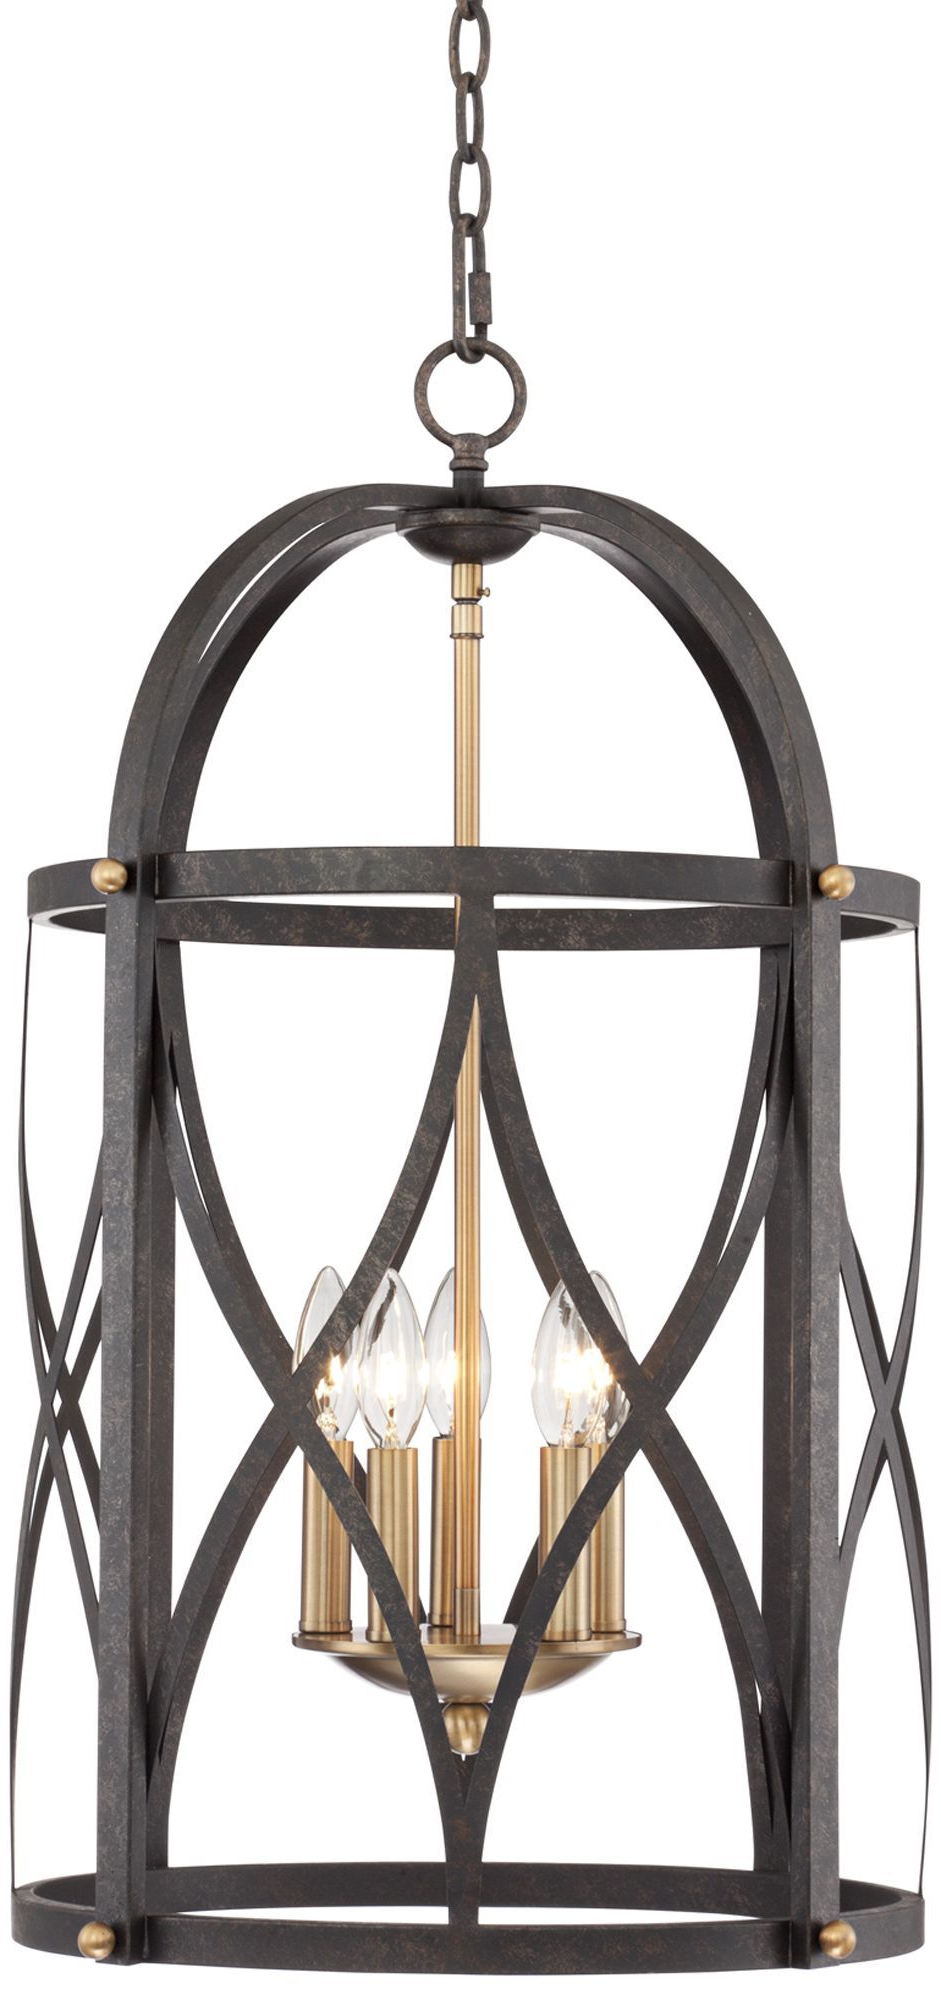 Nisbet 6 Light Lantern Geometric Pendants In Favorite Torrison 5 Light 16' Wide Dark Bronze Foyer Chandelier (View 11 of 20)